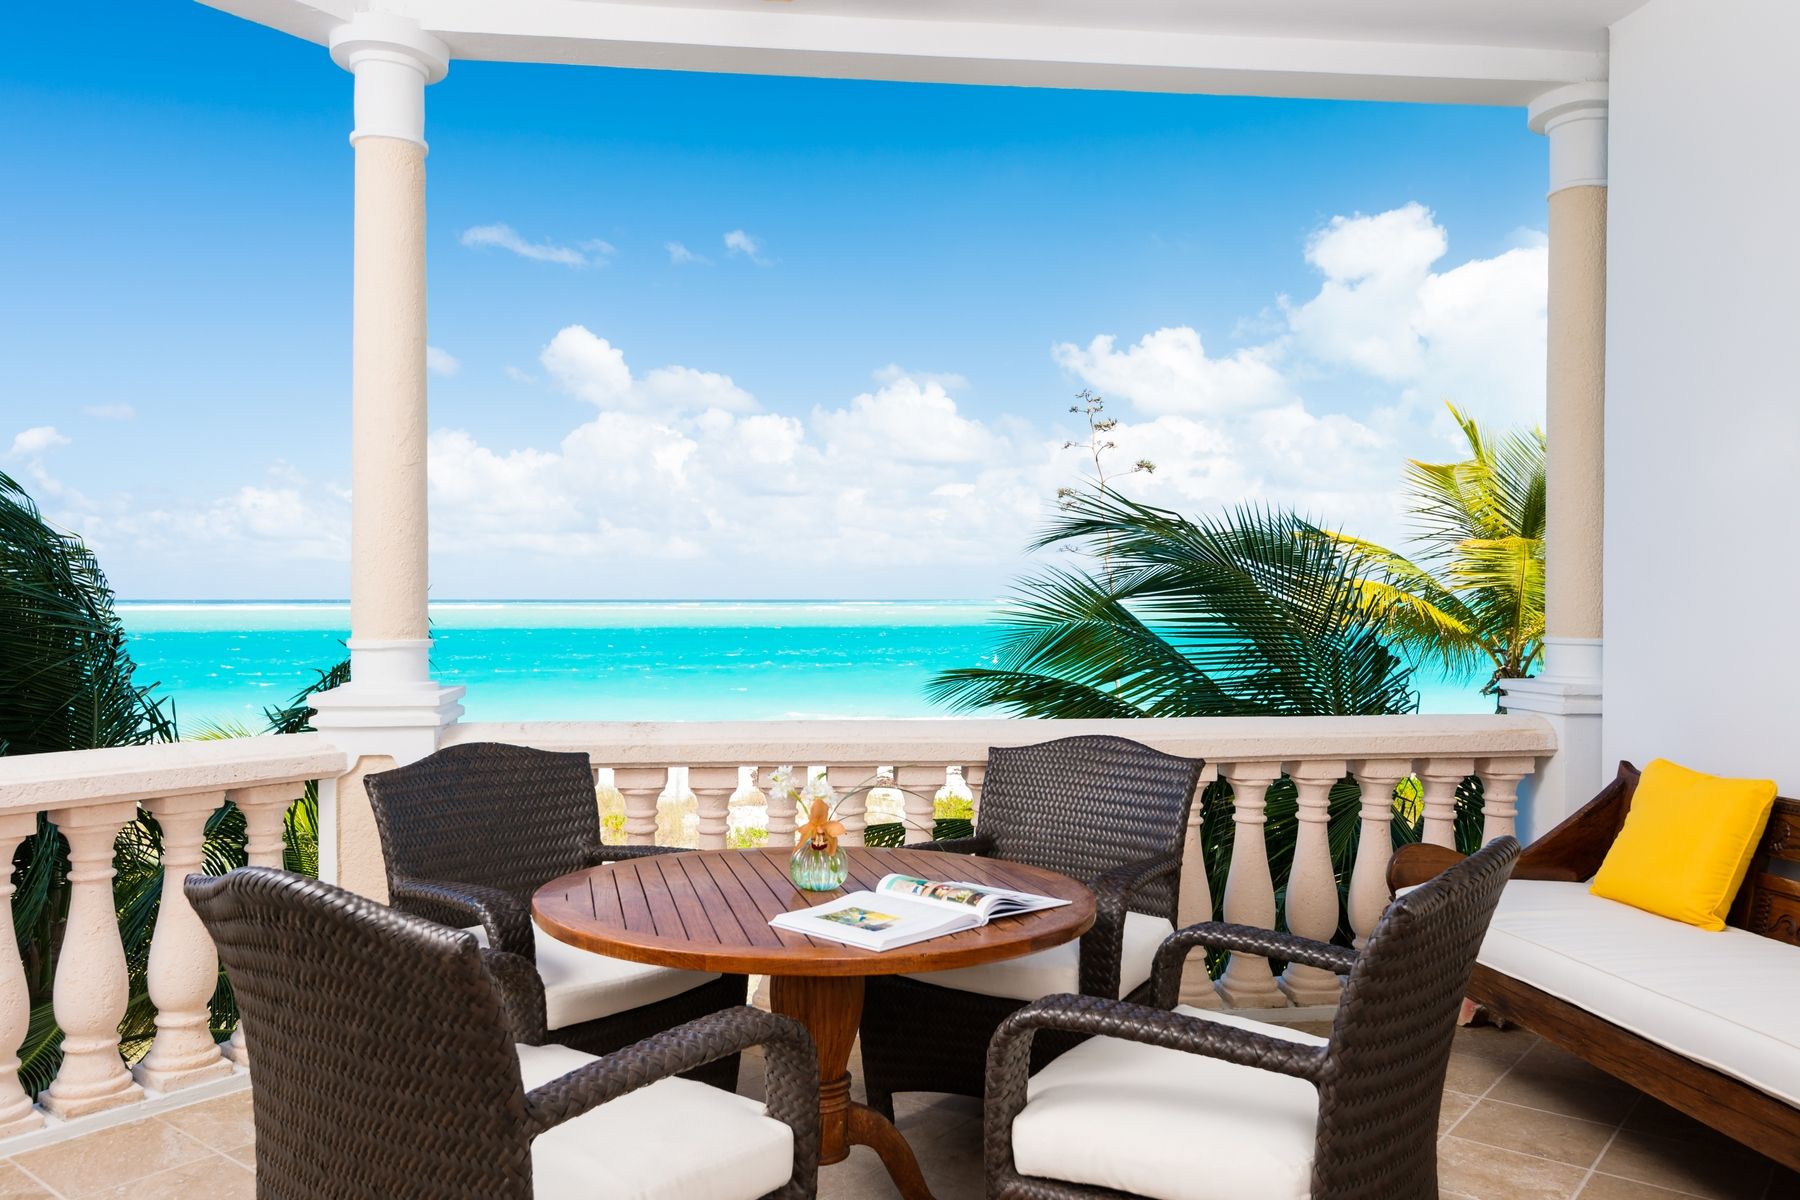 Condominium for Sale at Point Grace - Suite E202 Point Grace Resort, Grace Bay, Providenciales Turks And Caicos Islands